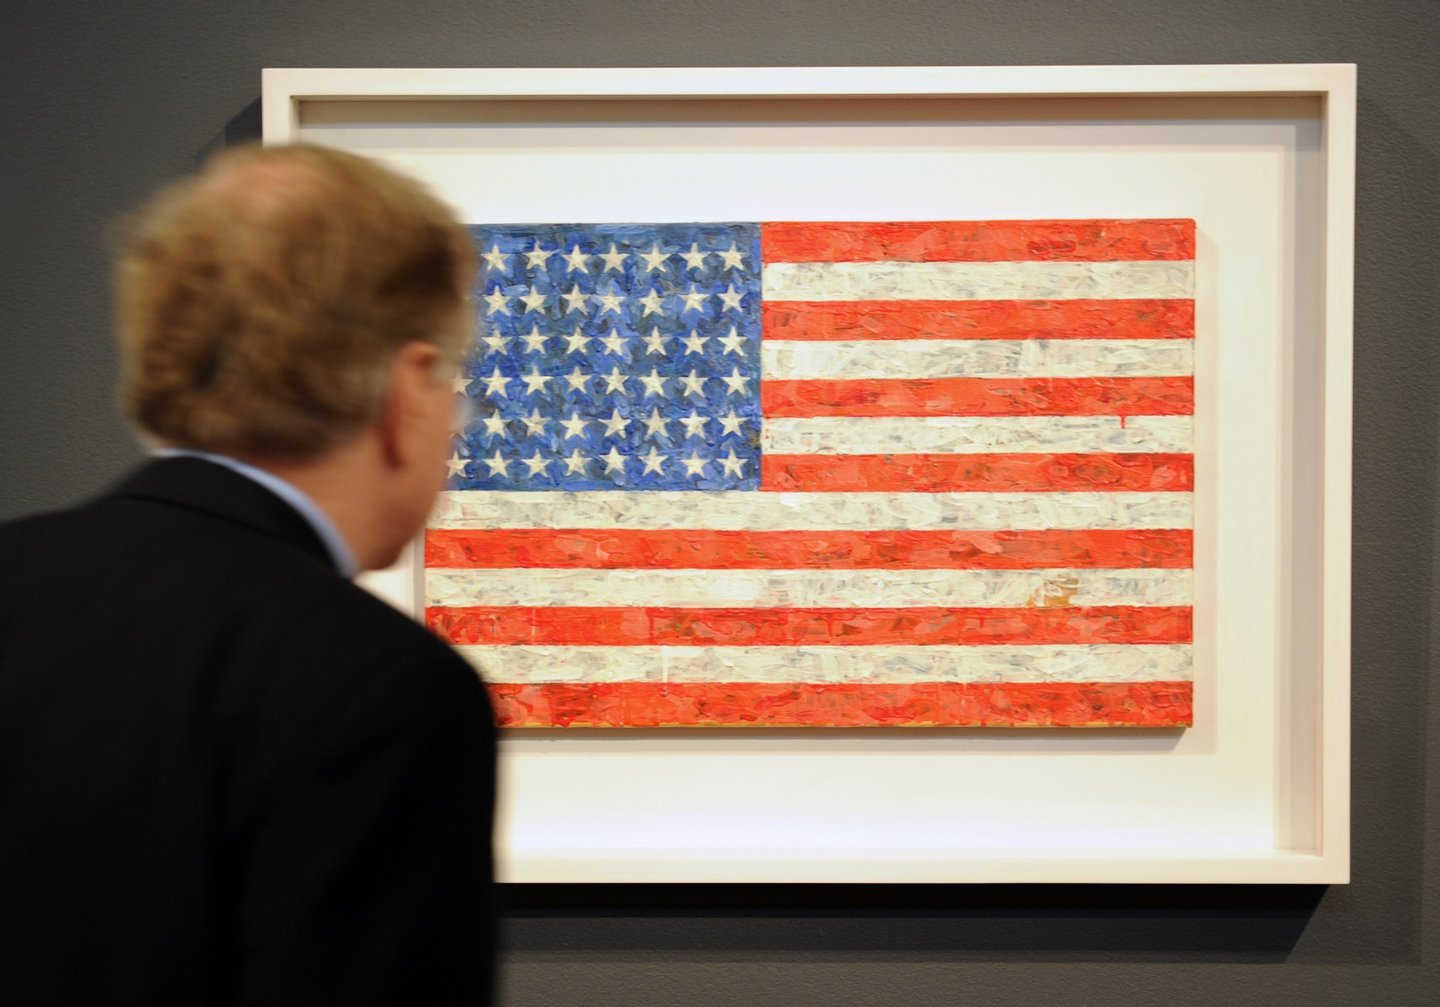 "TO GO WITH AFP STORY US-LIFESTYLE ART by PAOLA MESSANA A man views Jasper Johns' ""Flag"", 1960-66, estimated at USD 10 million to 15 million, on display April 29, 2010 at Christie's in New York. This belongs to the collection of Michael Chrichton, to be sold at the Post-War and Contemporary art evening sale at Christie's May 11.  AFP PHOTO/Stan Honda (Photo credit should read STAN HONDA/AFP/Getty Images)"